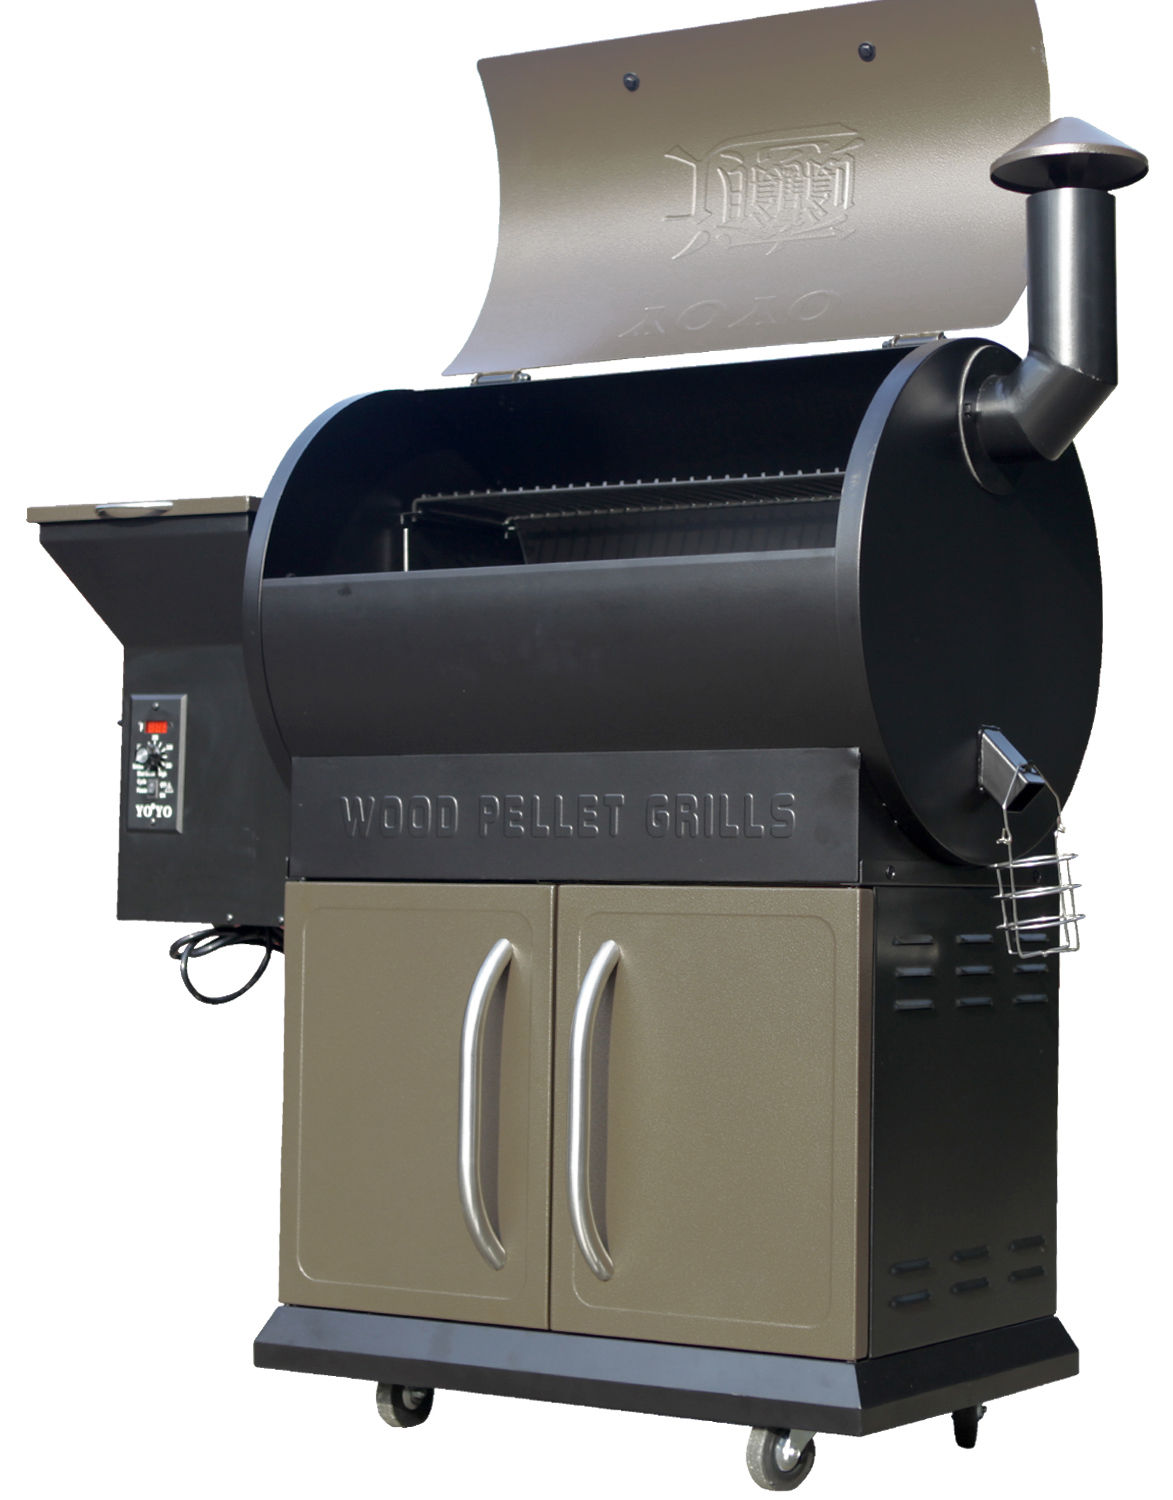 Z GRILLS Deluxe Wood Pellet Grill Smoker BBQ 684sq. with ...